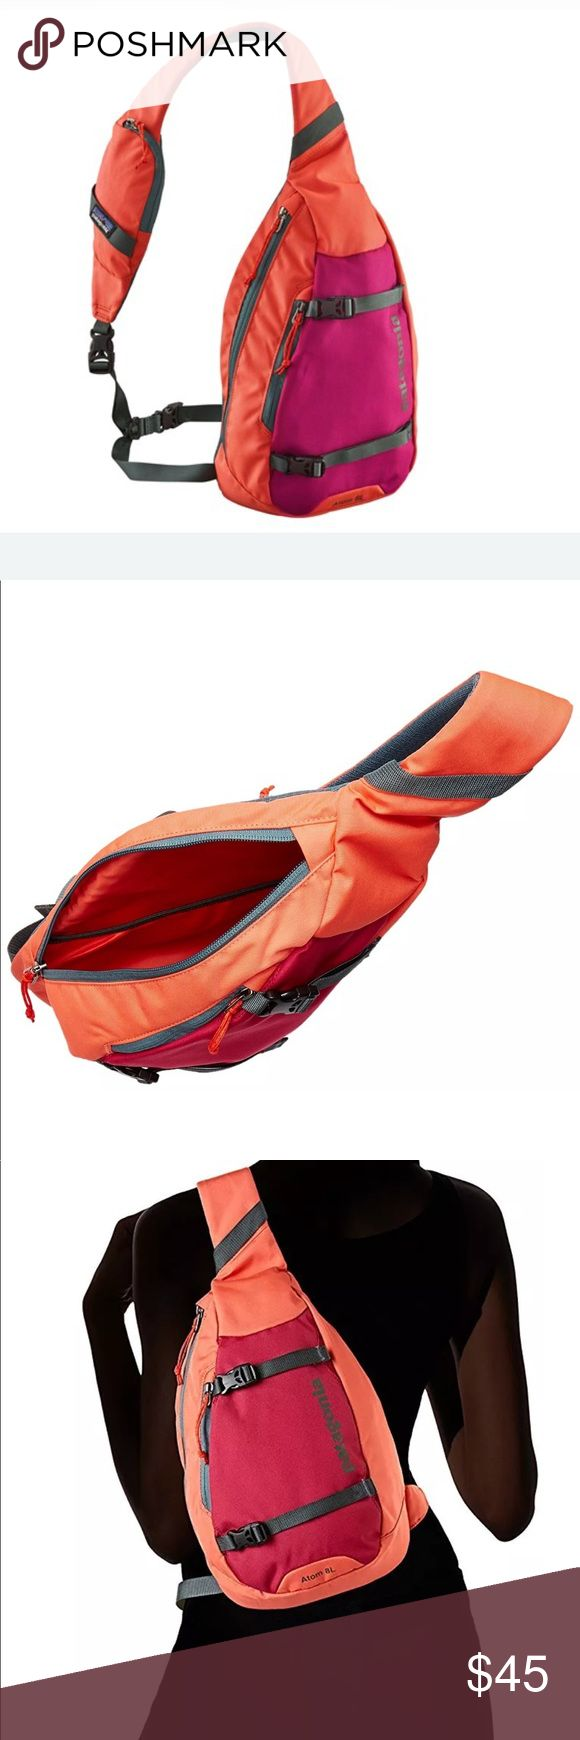 PATAGONIA 8L ATOM SLING BAG CORAL - BRAND NEW! Brand Mew With Tags and No Flaws! From a smoke and pet free home.  Ships Fast! Patagonia Bags Shoulder Bags